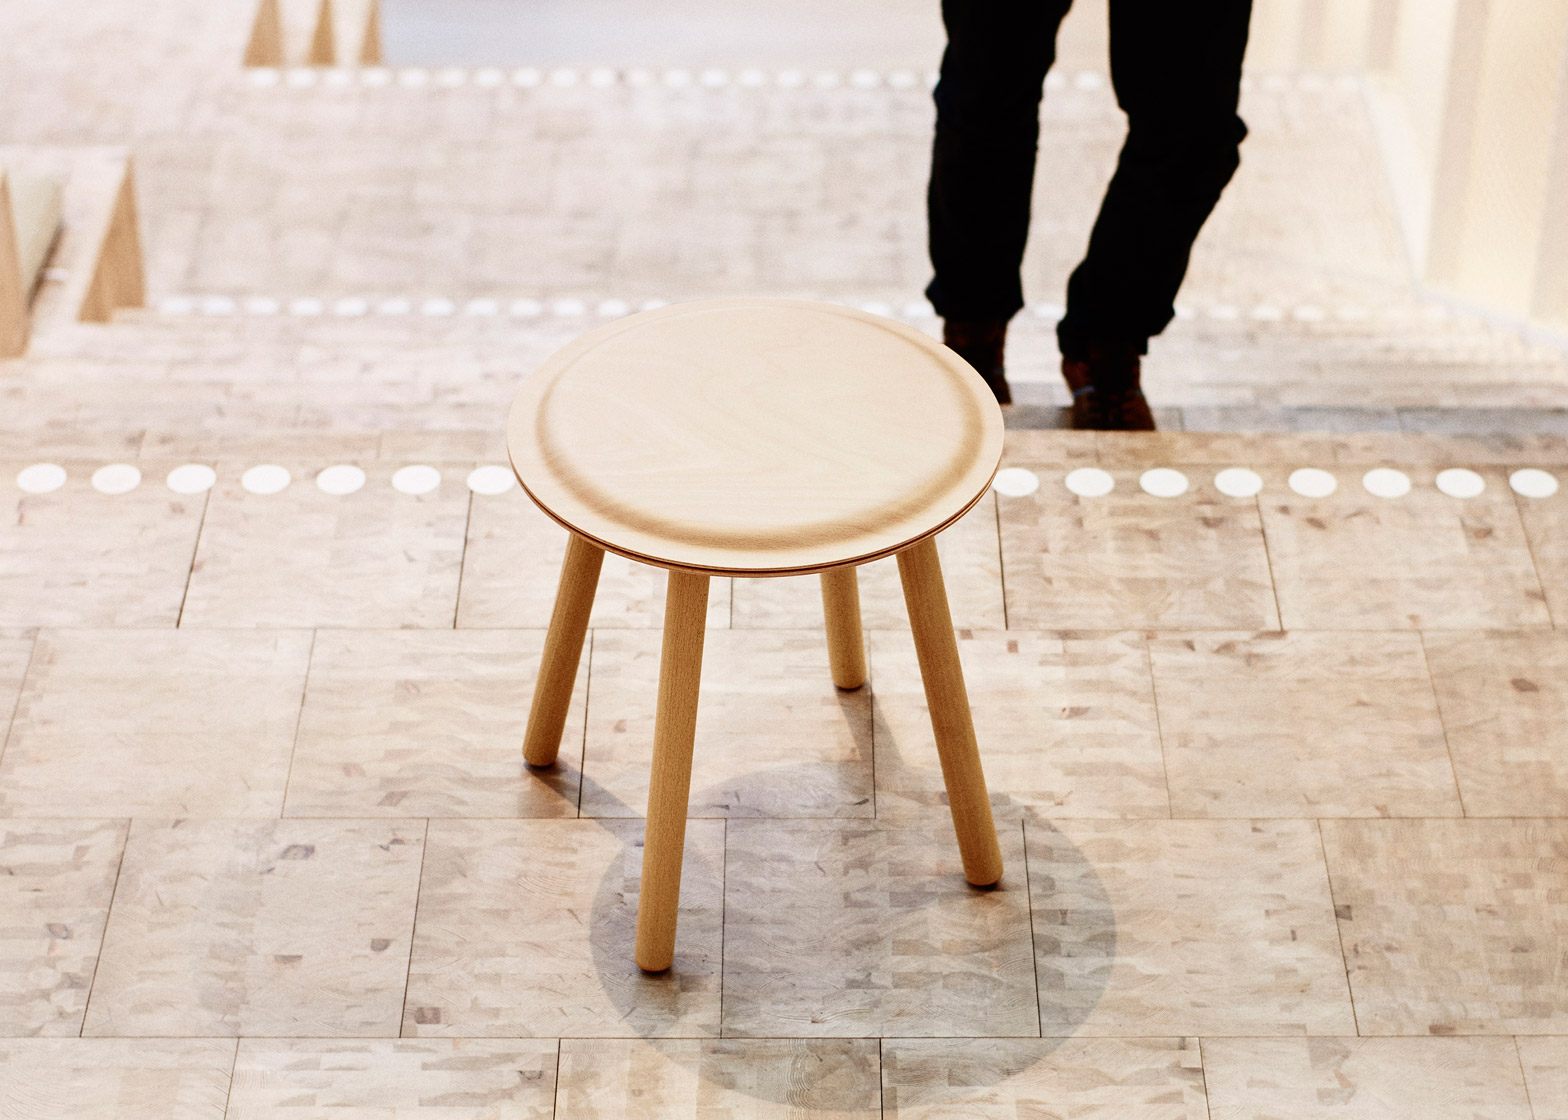 ikea-ps-17-collection-design-value-freedom-at-home-furniture-brand-young-urban-generation-launch_dezeen_1568_0